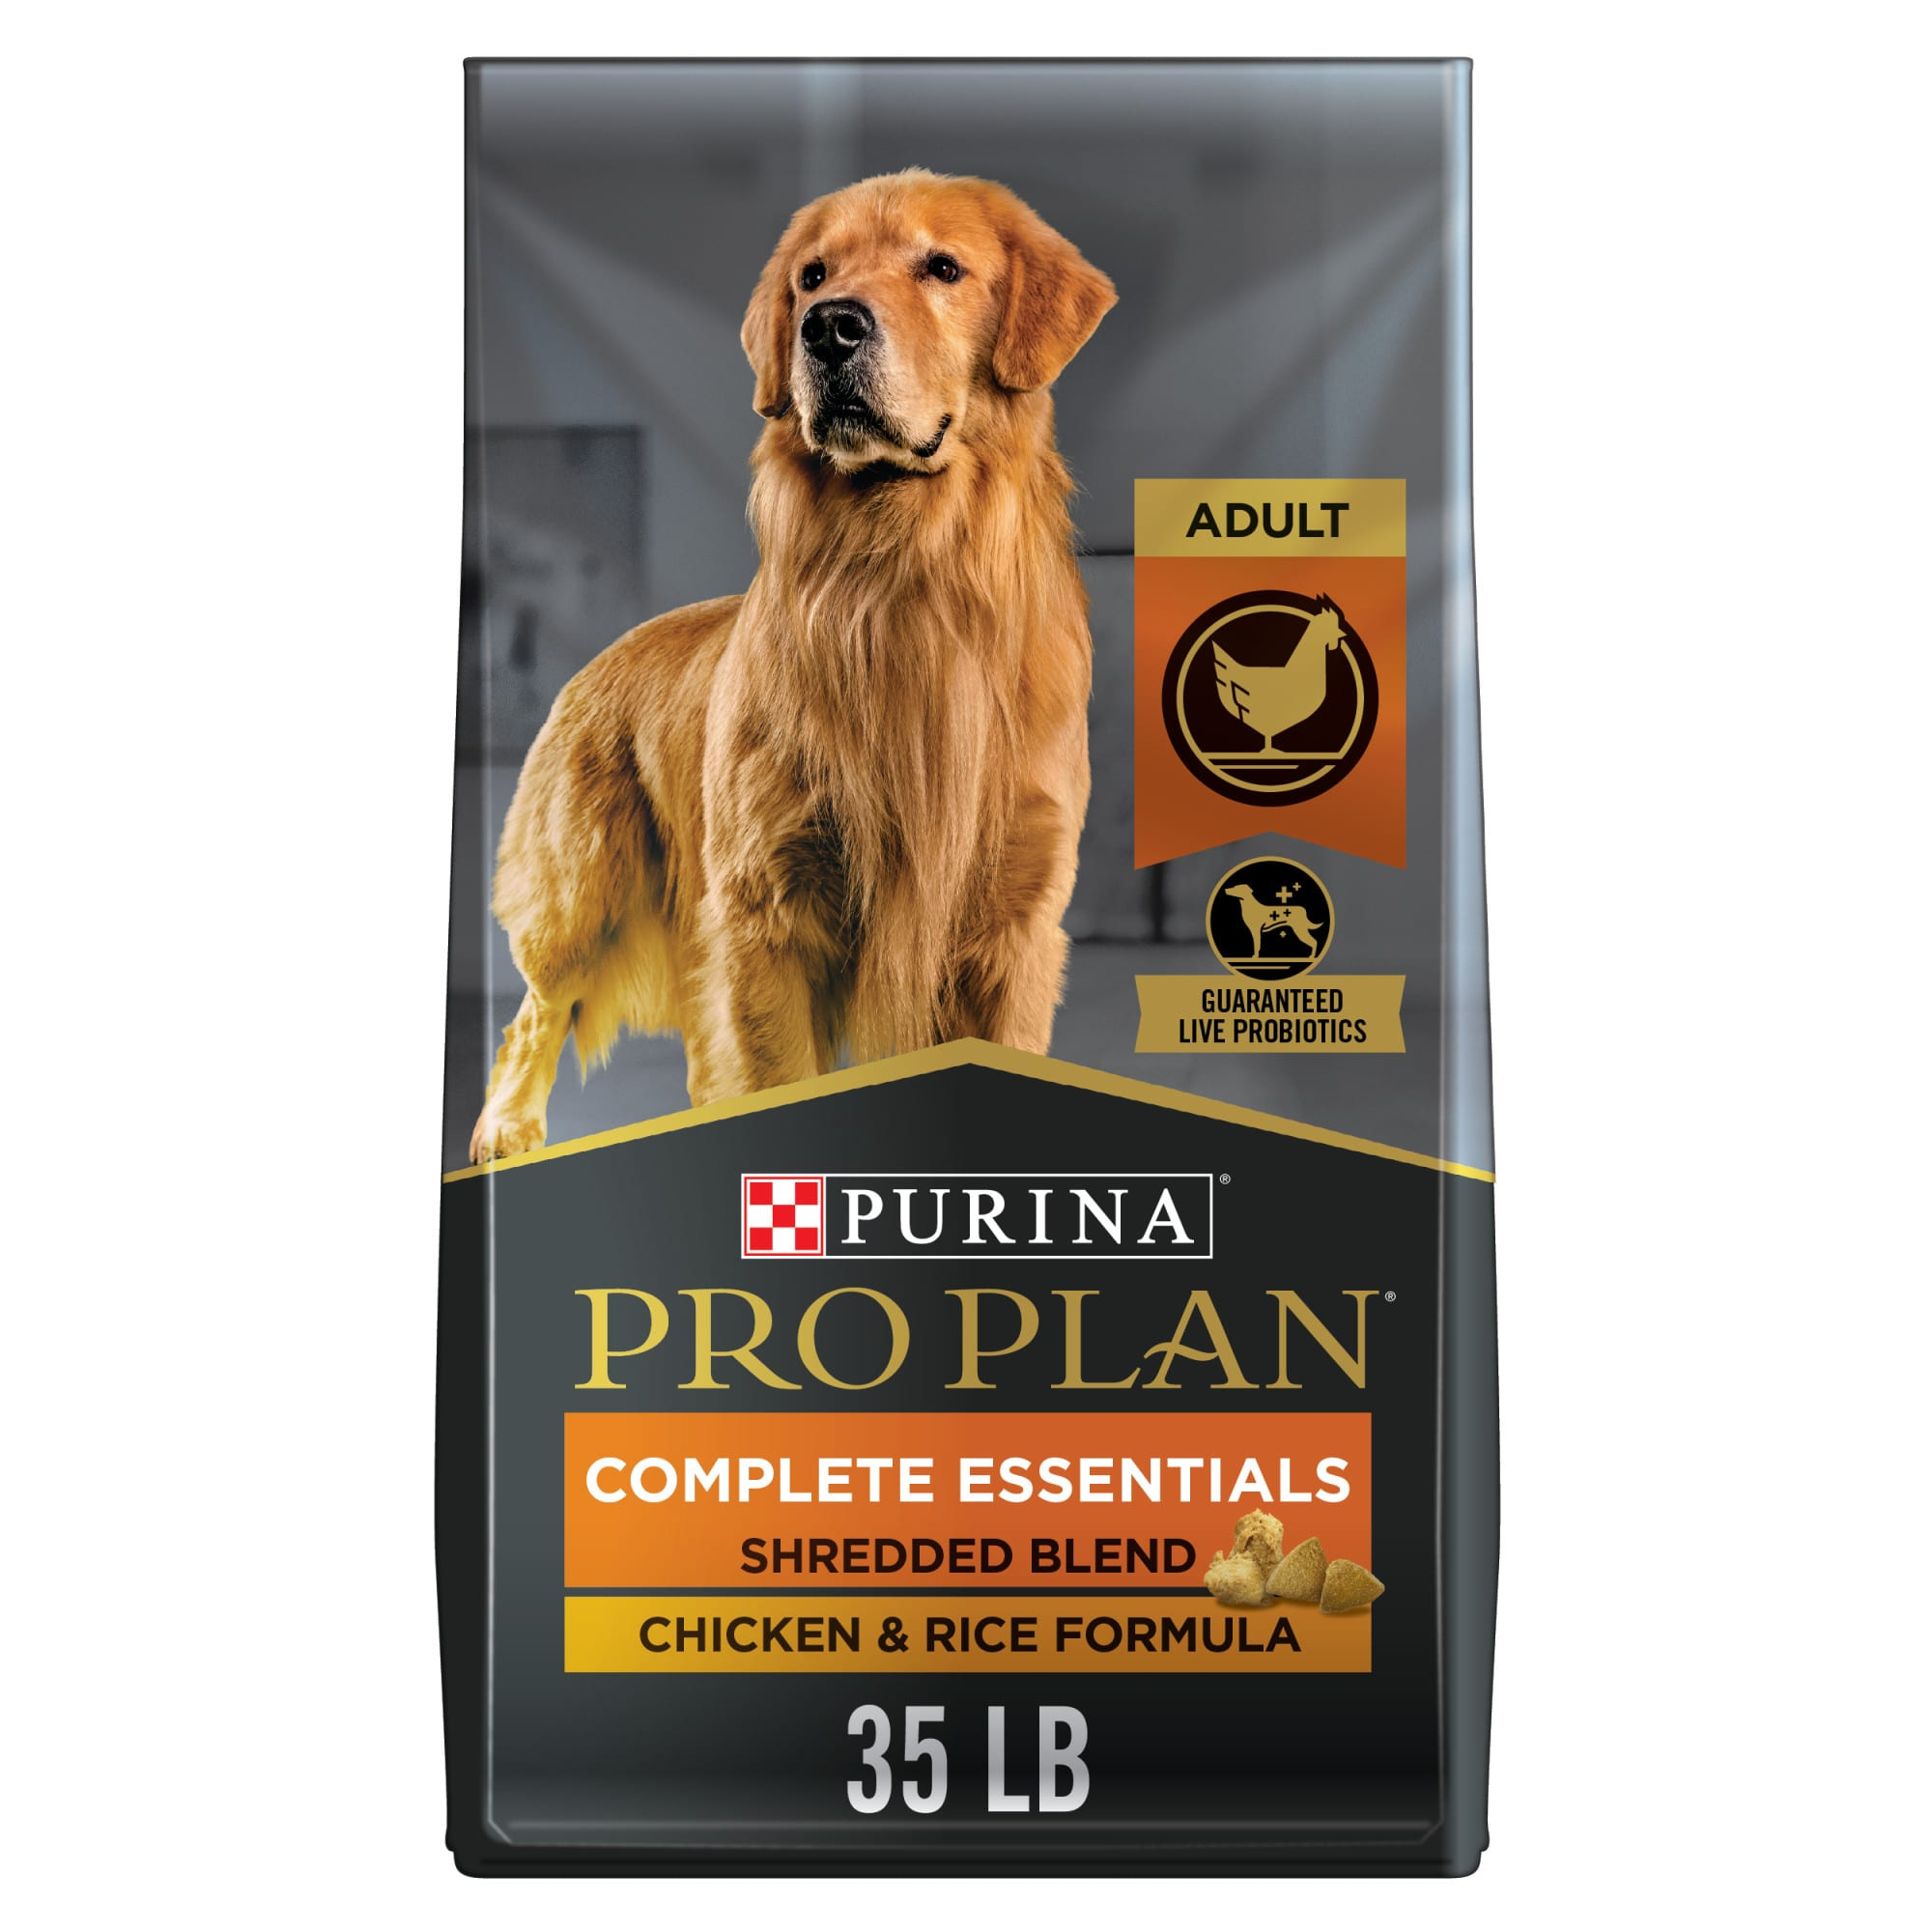 Pro Plan Shredded Blend formula offers the nutritional extras you\\\'ve come to expect from Pro Plan. We start with real chicken as the #1 ingredient in a multi-textured blend of hard kibble and savory tender shredded pieces--for an optimum combination of nutrition and taste. Then we added wholesome grains, including rice and whole wheat, which are highly digestible sources of carbohydrates for energy and quality fiber sources to promote easy cleanup. Plus, we include high levels of antioxidants for overall health and wellness and an optimal protein: fat ratio to help your dog maintain lean muscle mass and a healthy body condition. Moreover, we carefully select each ingredient for its nutritional value and to ensure it meets our strict quality standards, as well as yours.